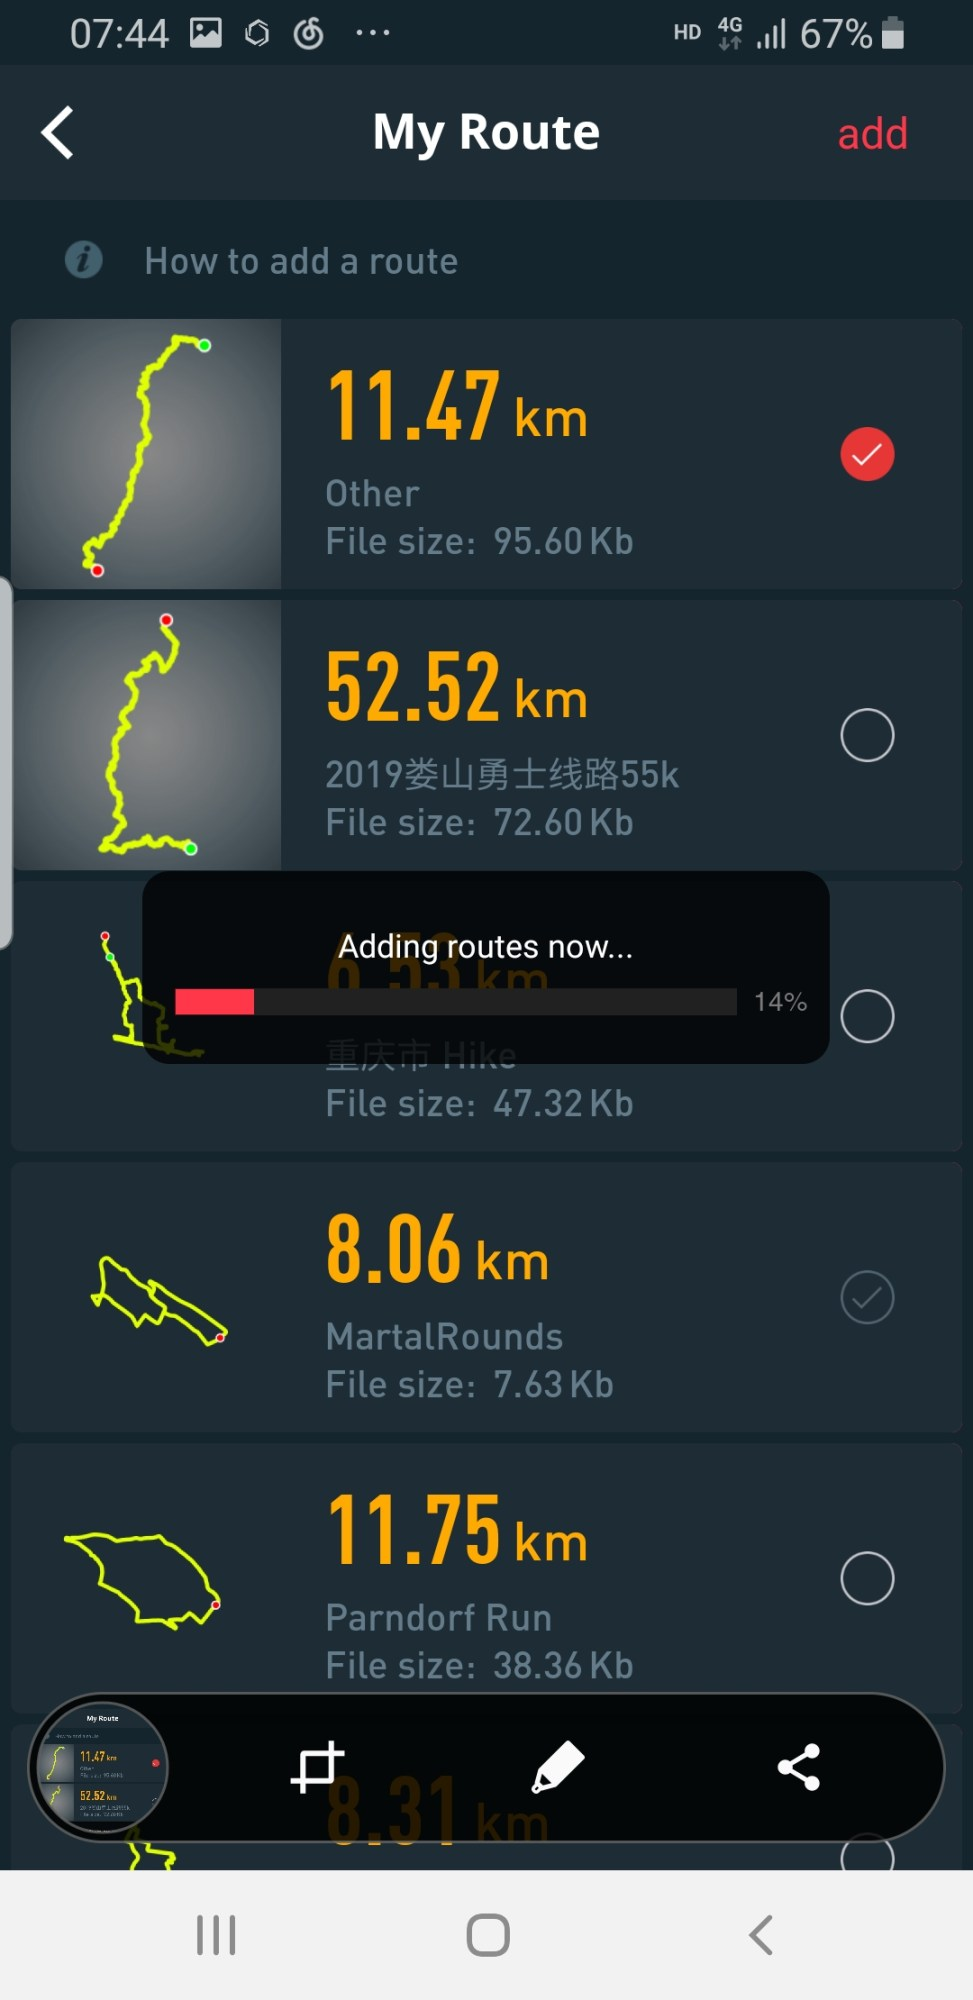 Coros App: Add route from My Routes